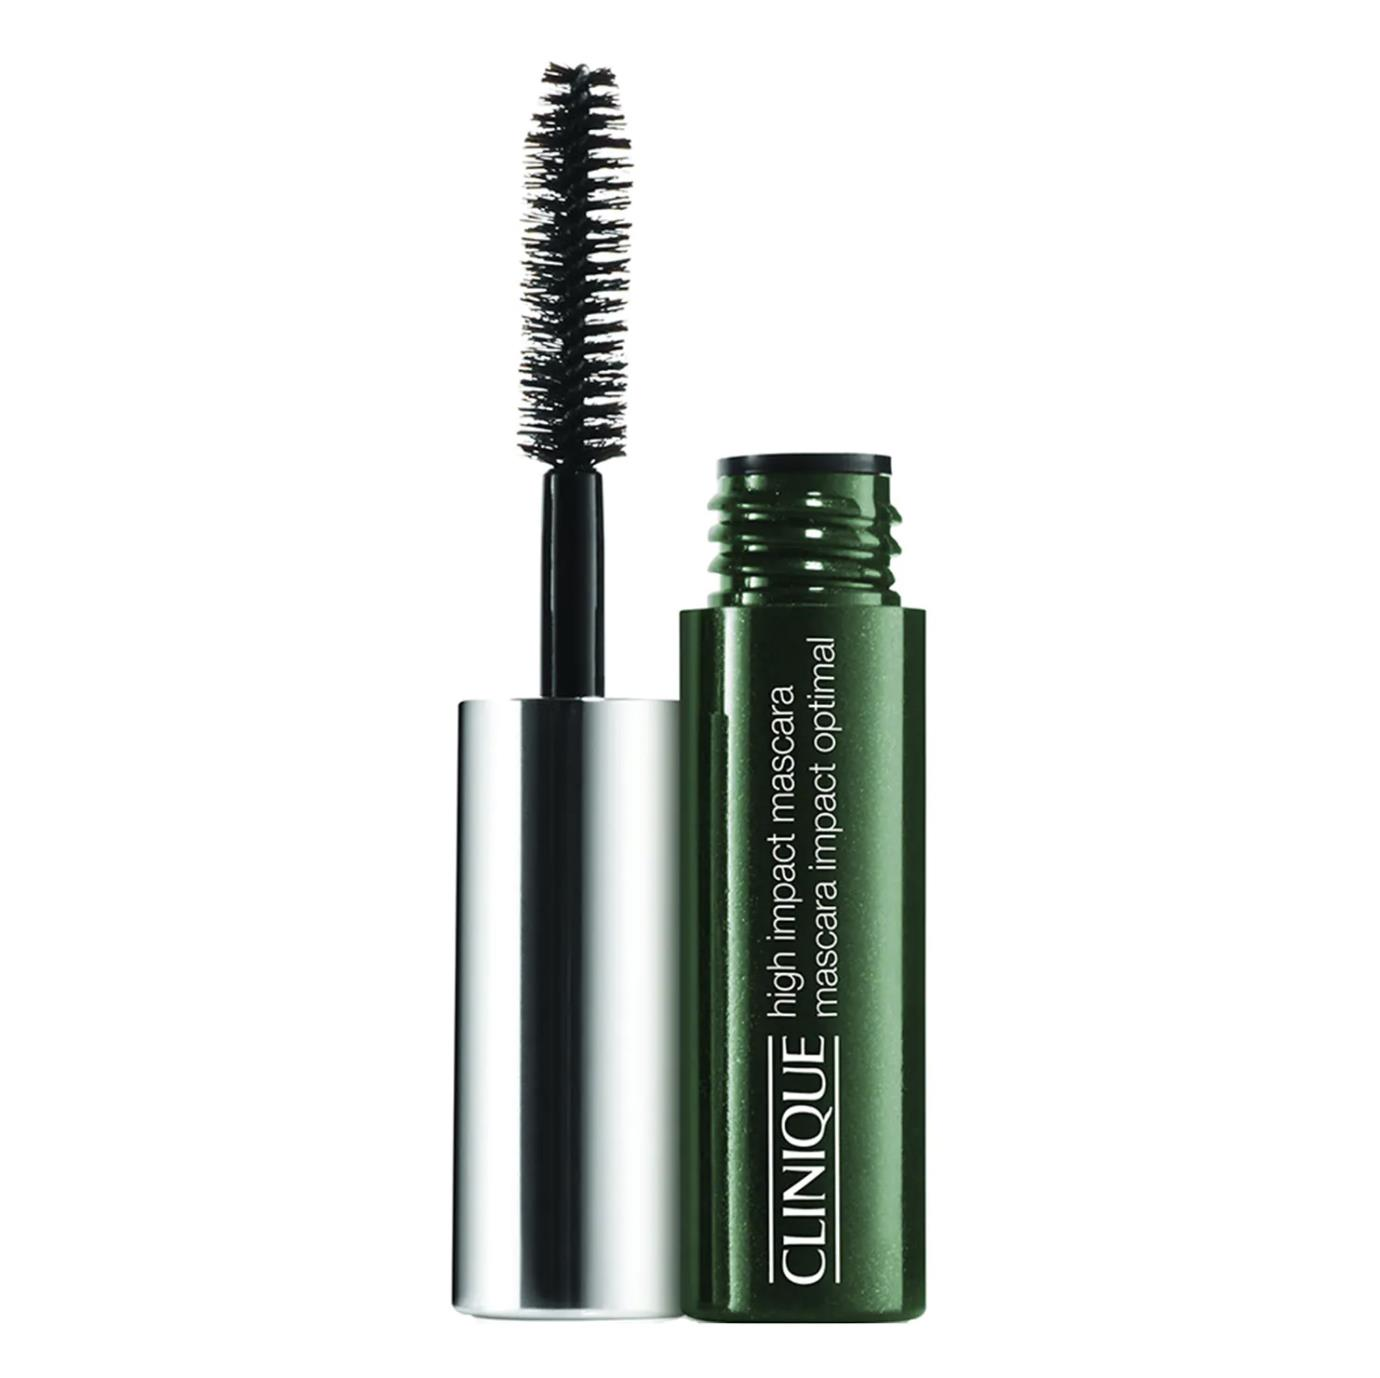 'High Impact Mascara' de Clinique